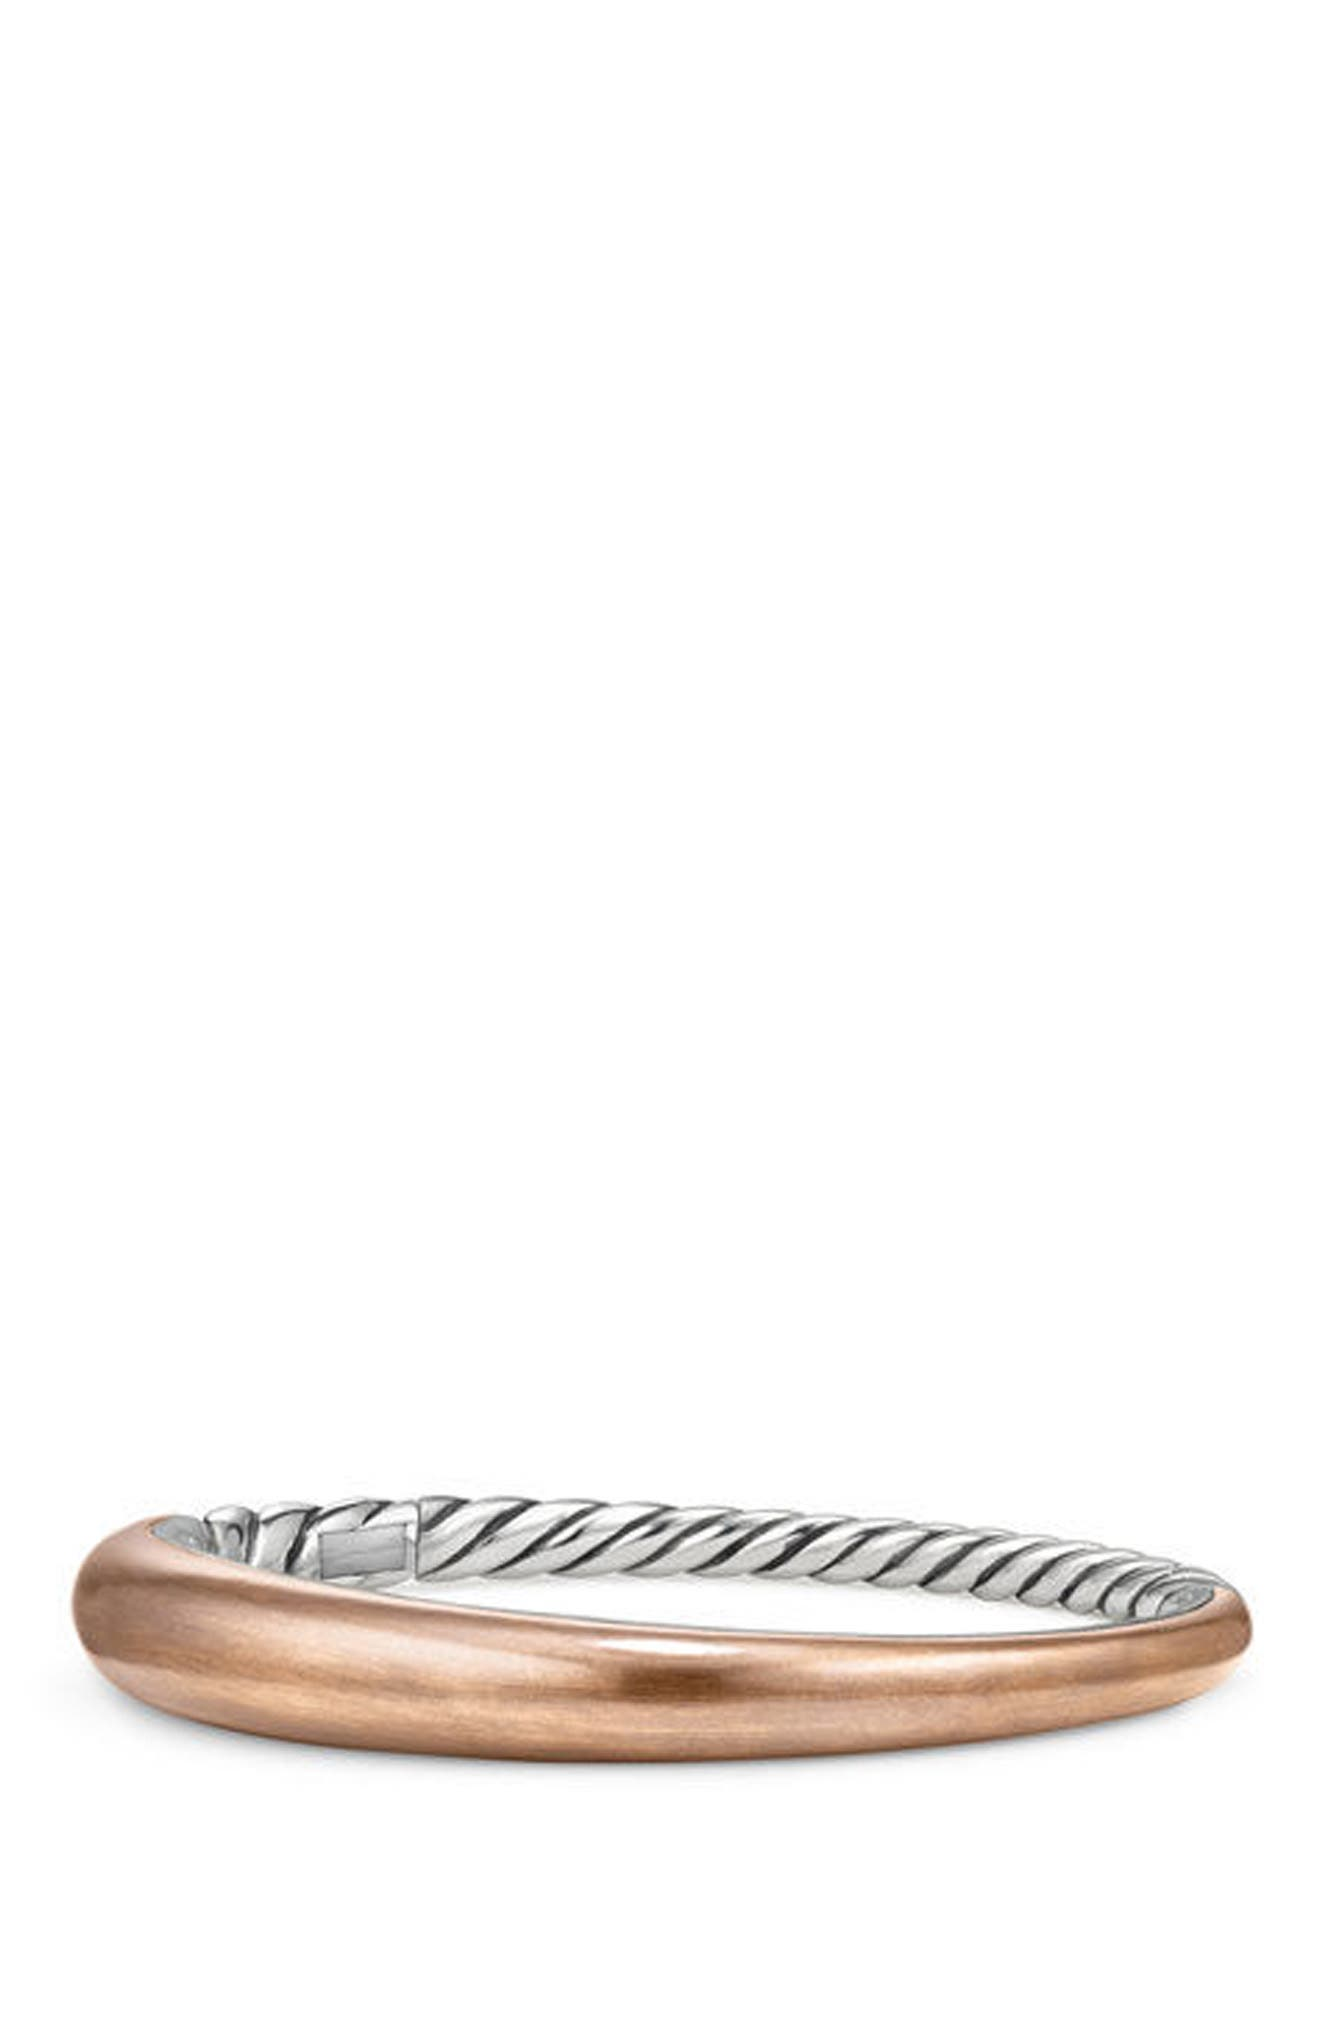 Main Image - David Yurman Pure Form Mixed Metal Smooth Bracelet with Diamonds, Bronze and Silver, 9.5mm